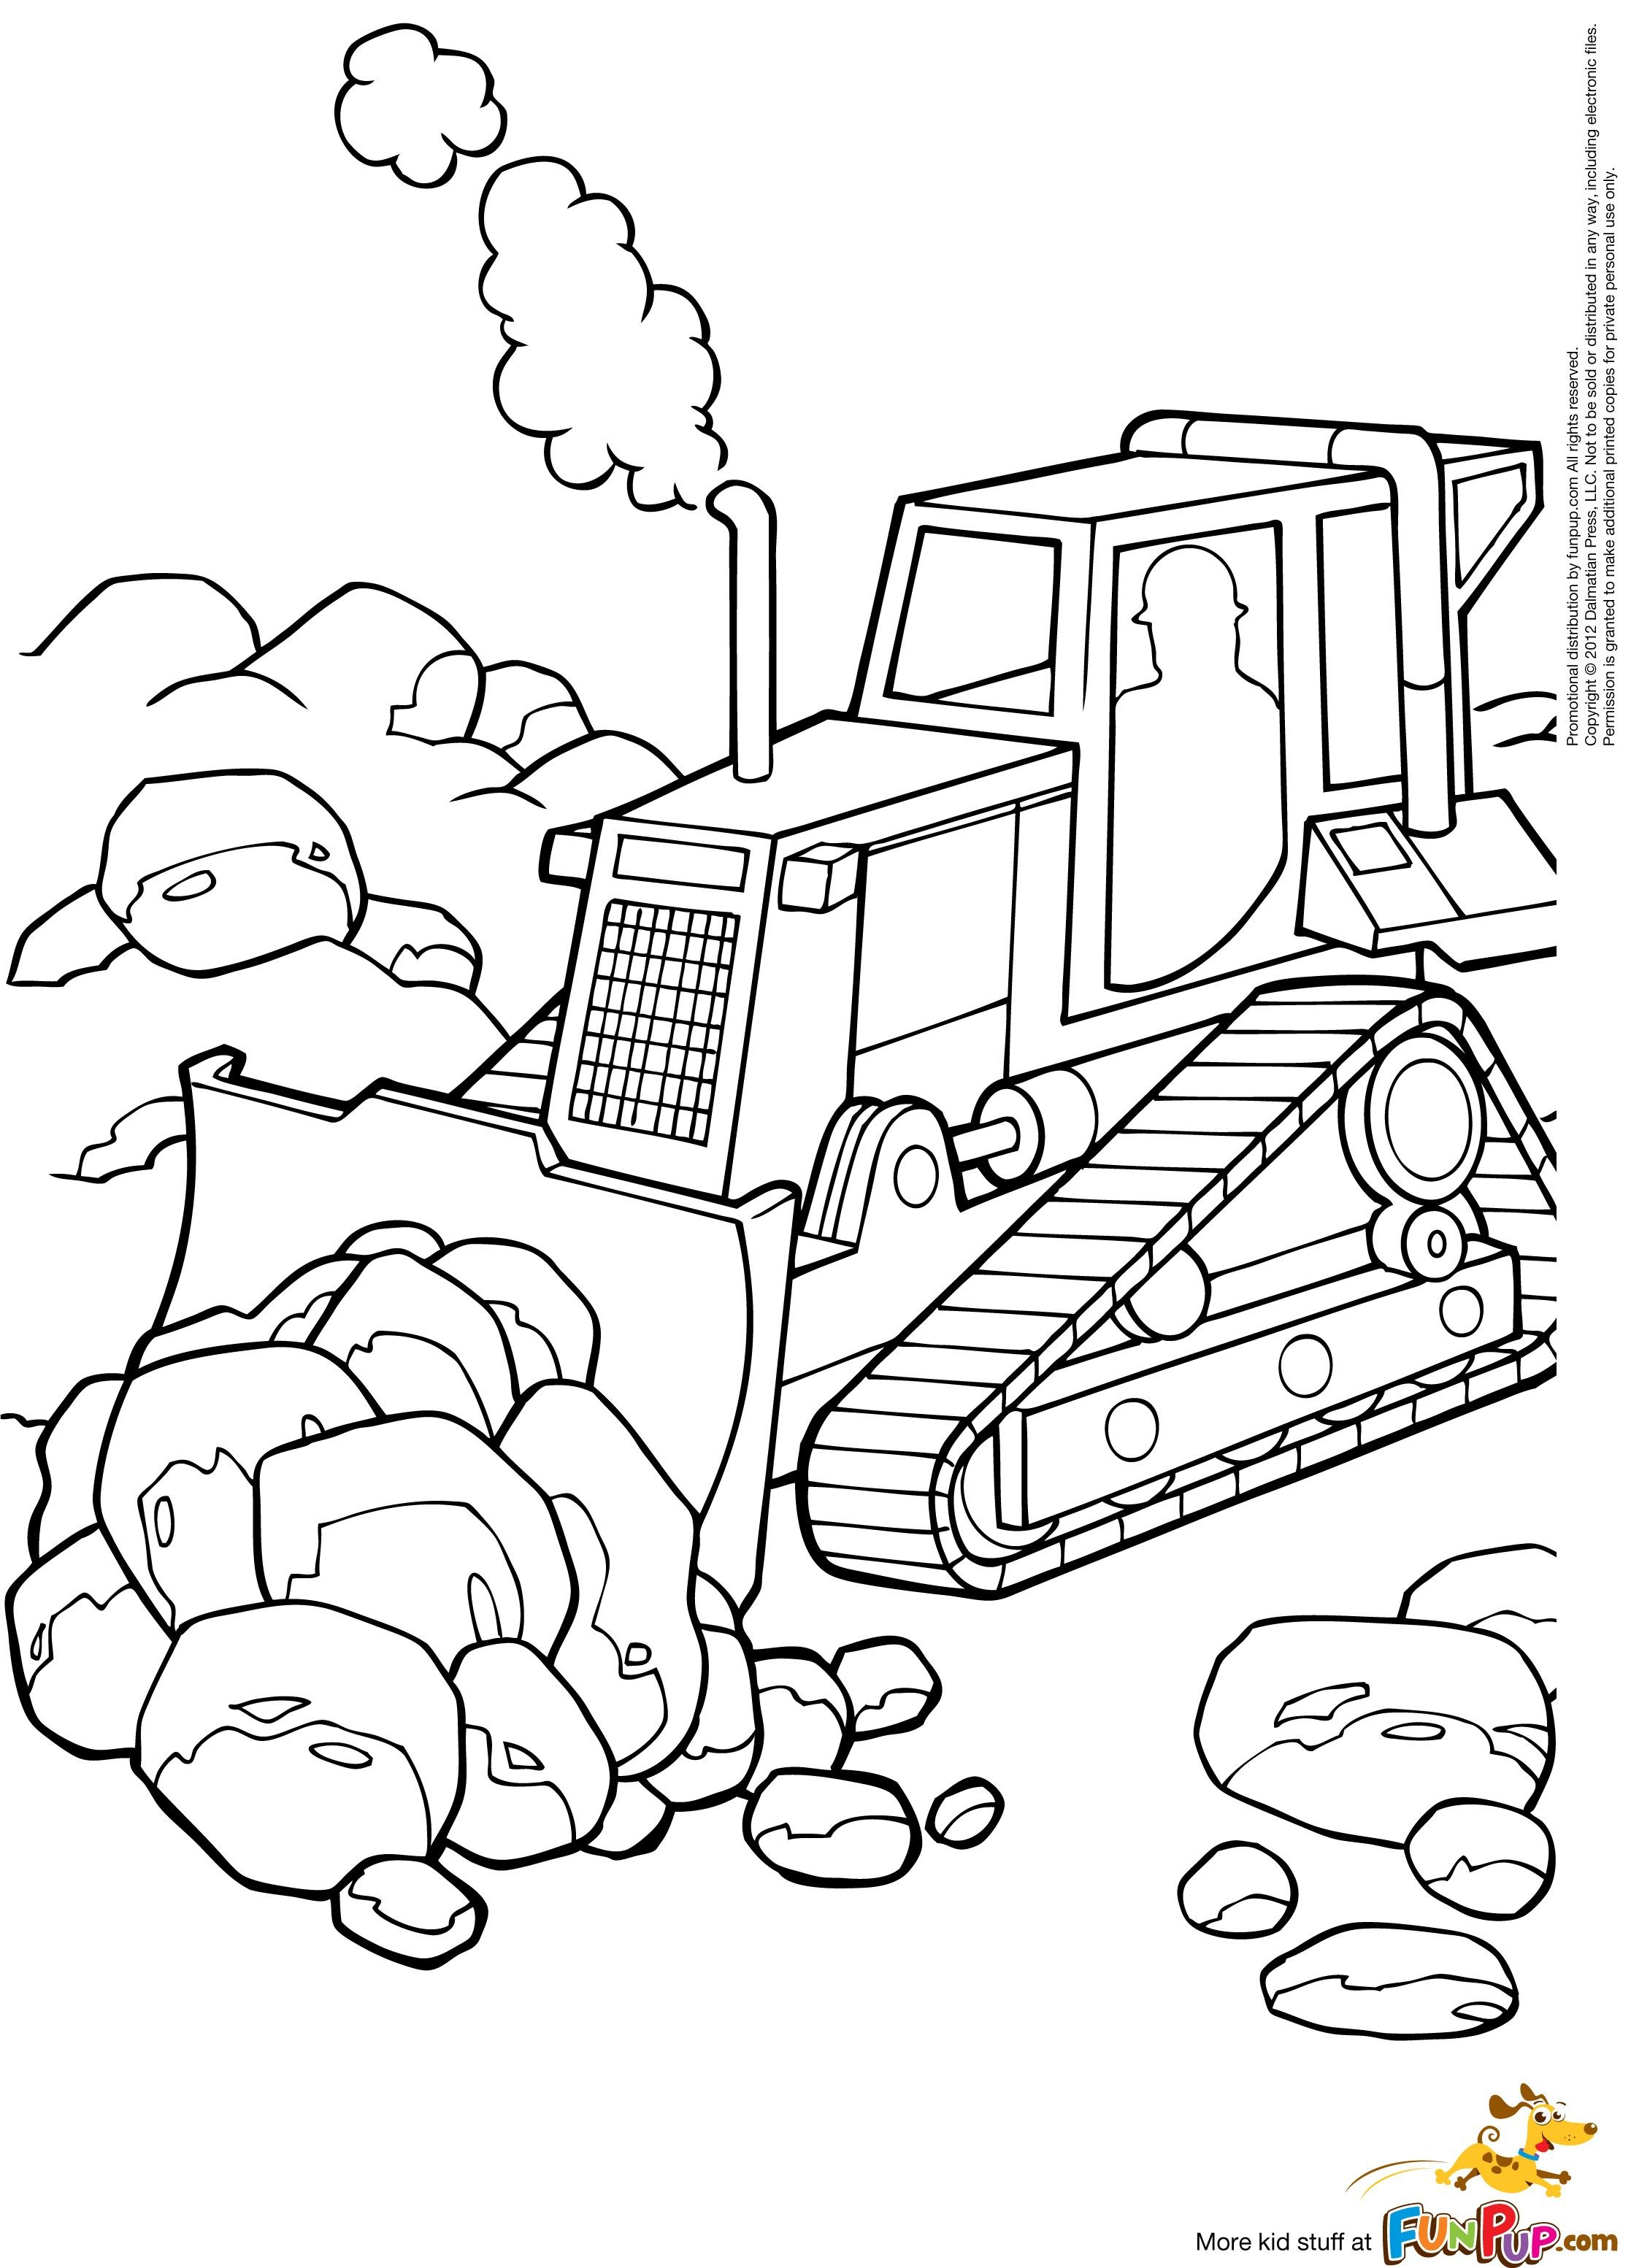 Pin By C Stubb On Hunter 3rd Bday Preschool Coloring Pages